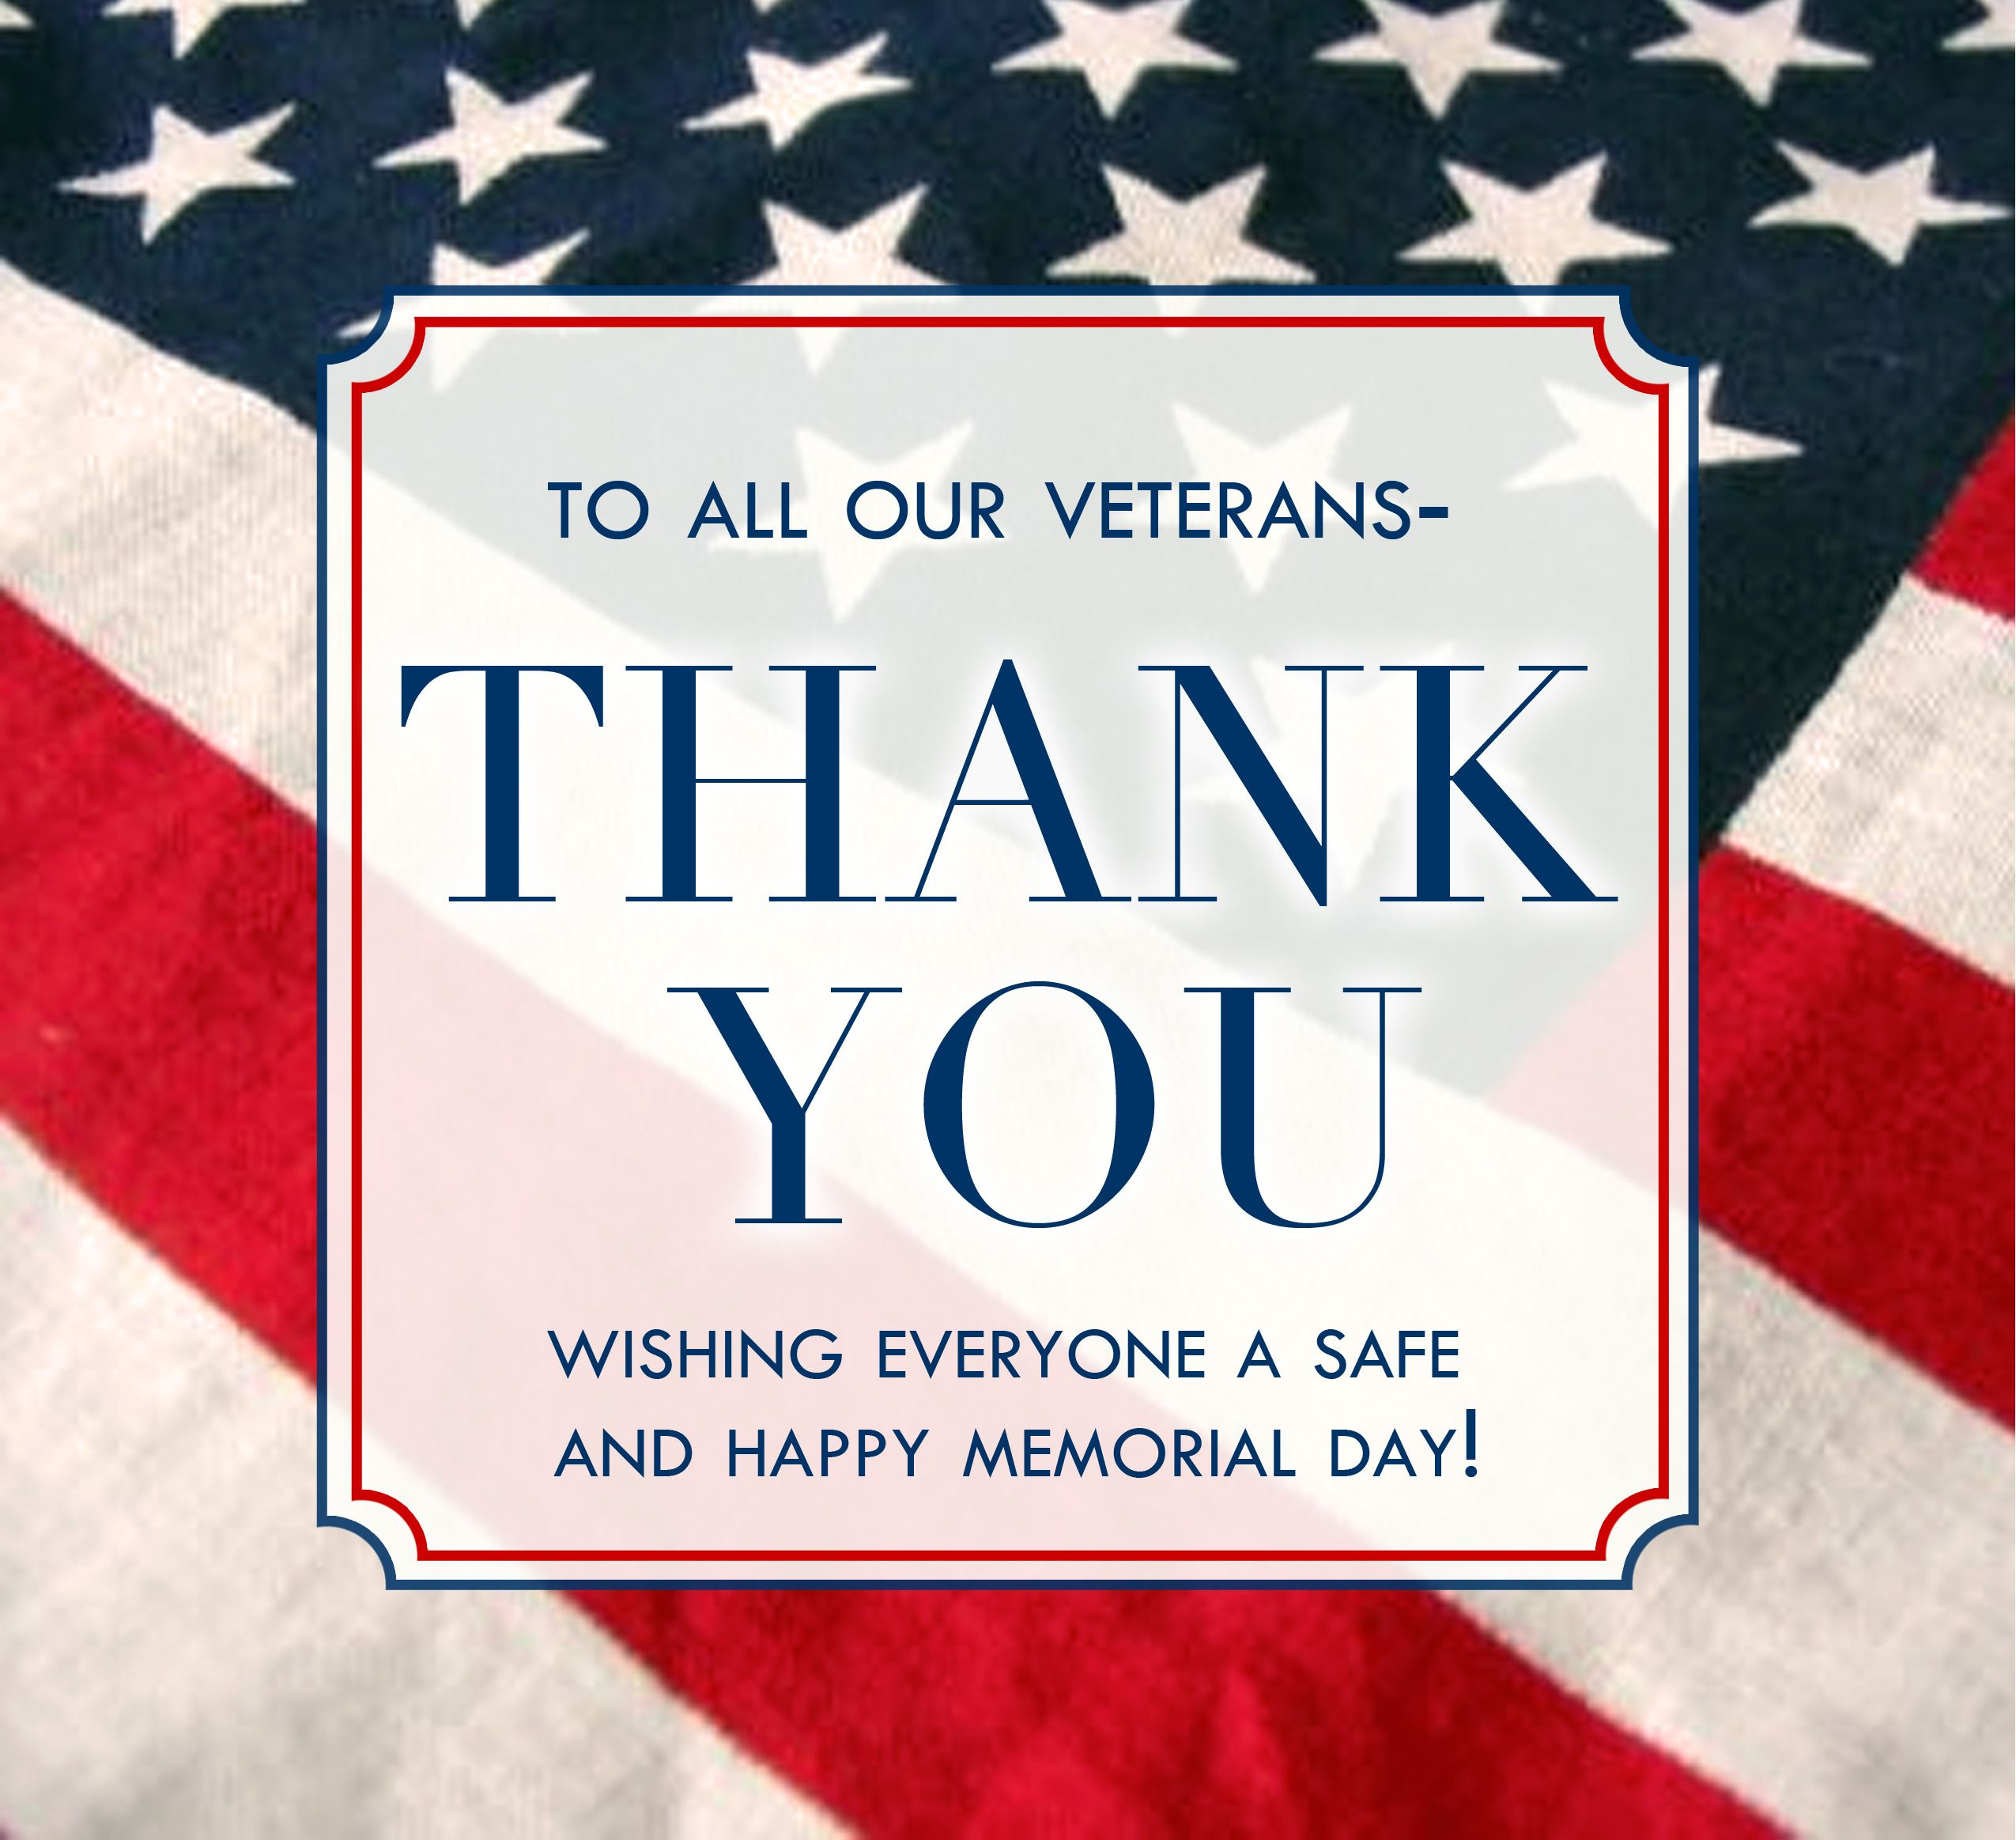 Boxhill Wishes To Thank All Of Our Veterans For Their